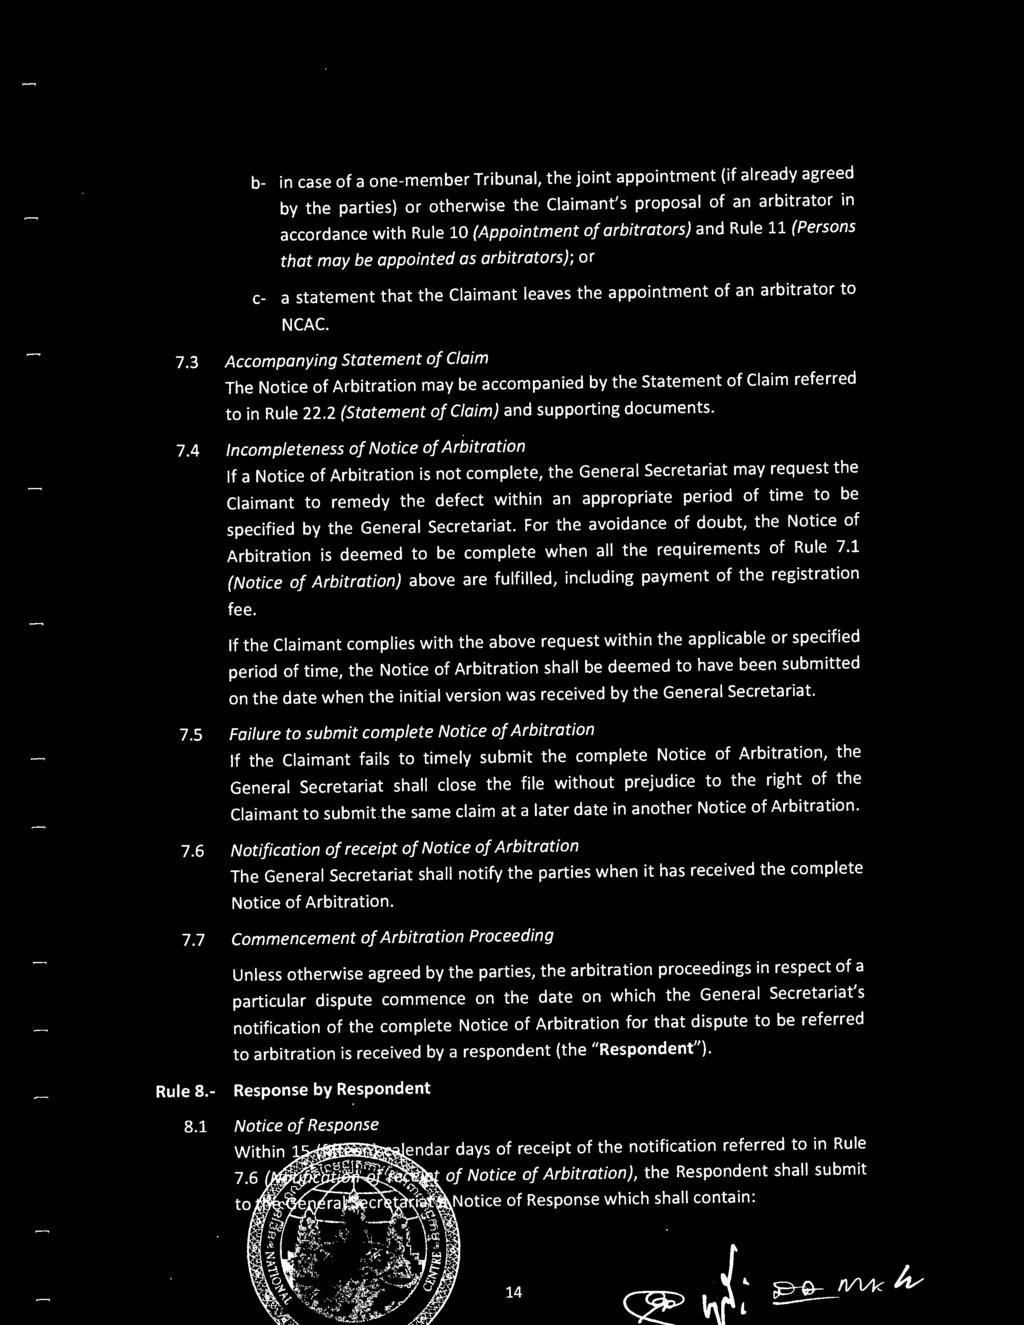 specified by the General Secretariat. For the avoidance of doubt, the Notice of Arbitration is deemed to be complete when all the requirements of Rule 7.